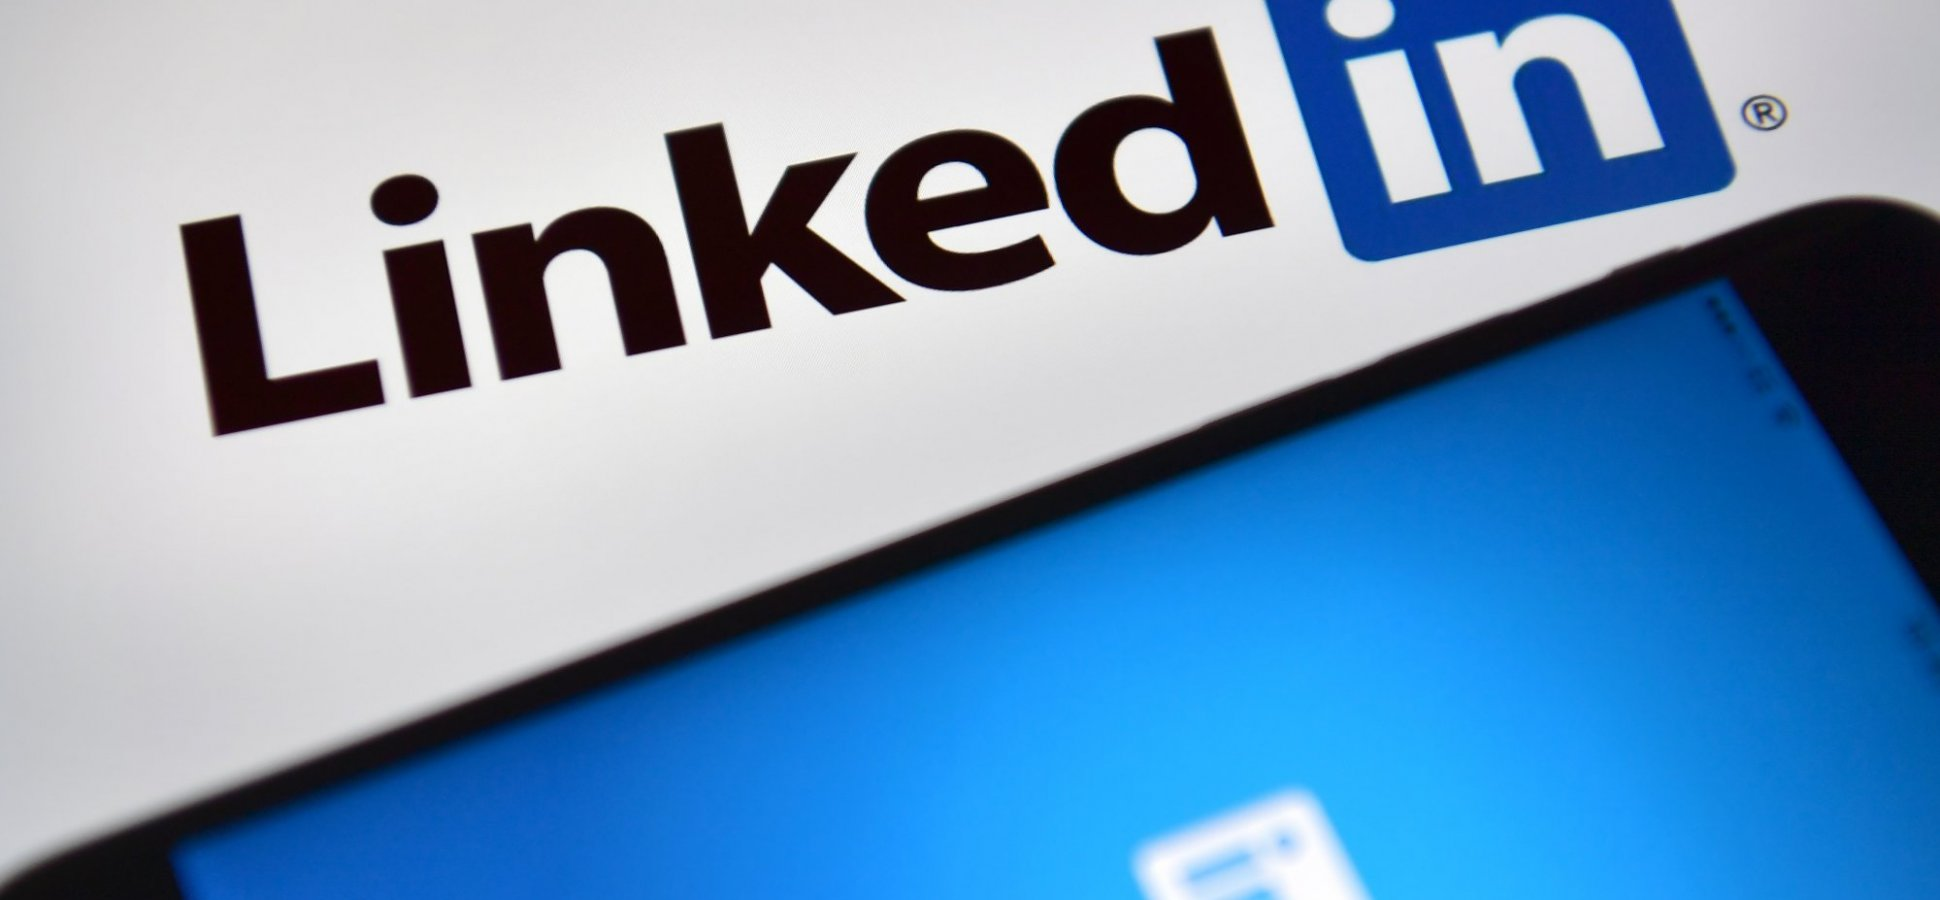 The Massive Personal Branding Mistake I Discovered From Studying 16,000 LinkedIn Profiles